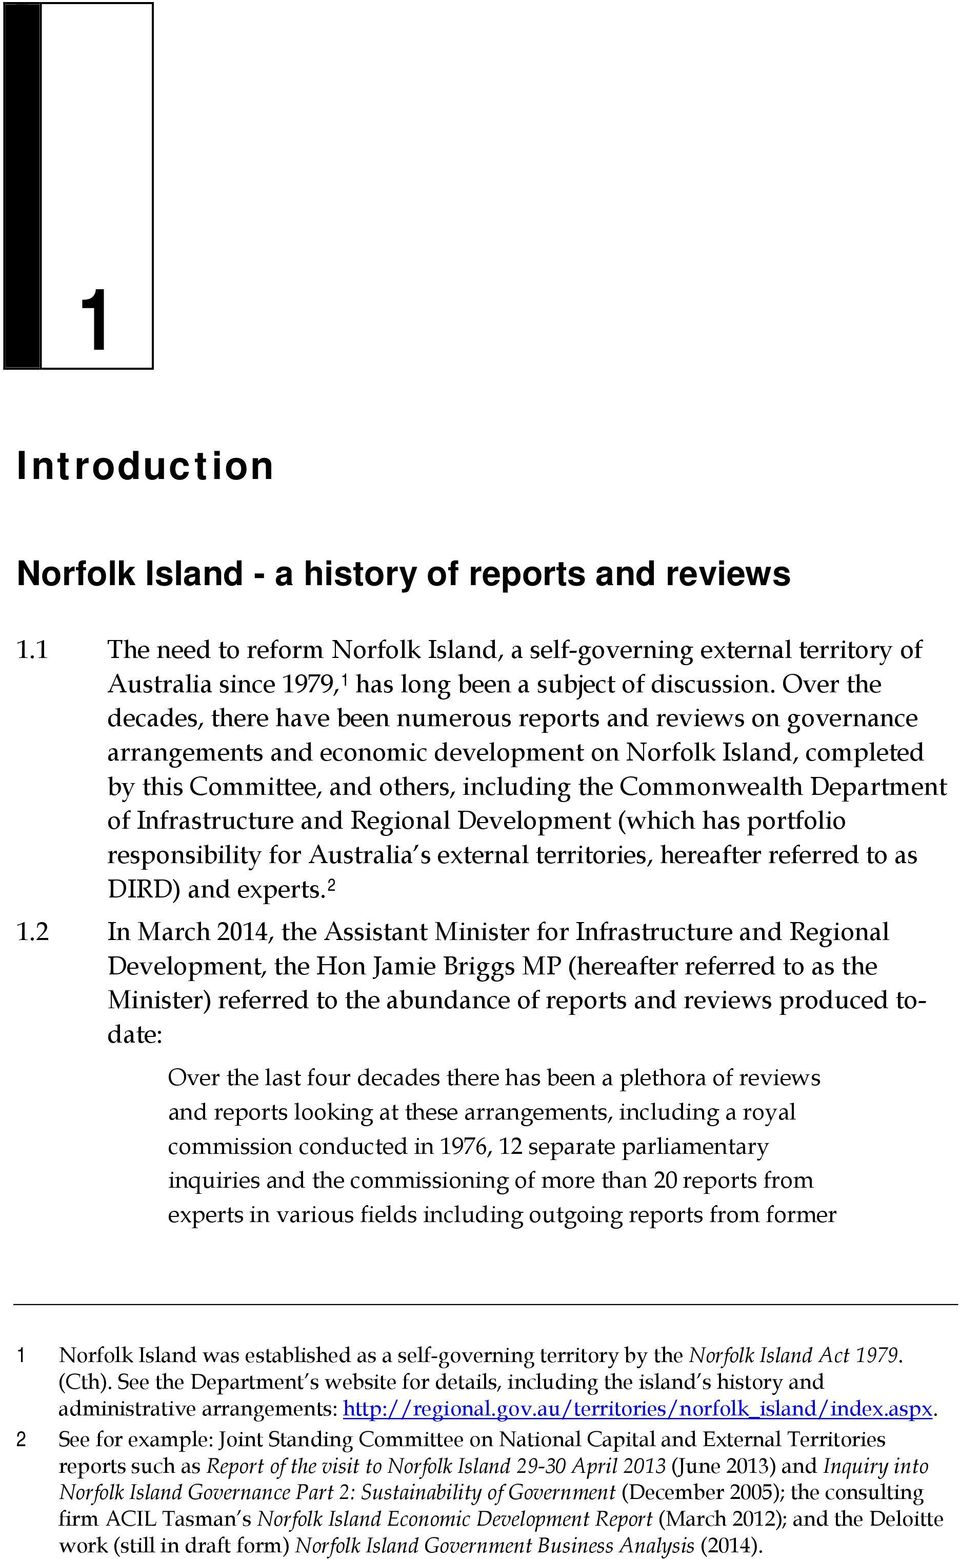 Over the decades, there have been numerous reports and reviews on governance arrangements and economic development on Norfolk Island, completed by this Committee, and others, including the